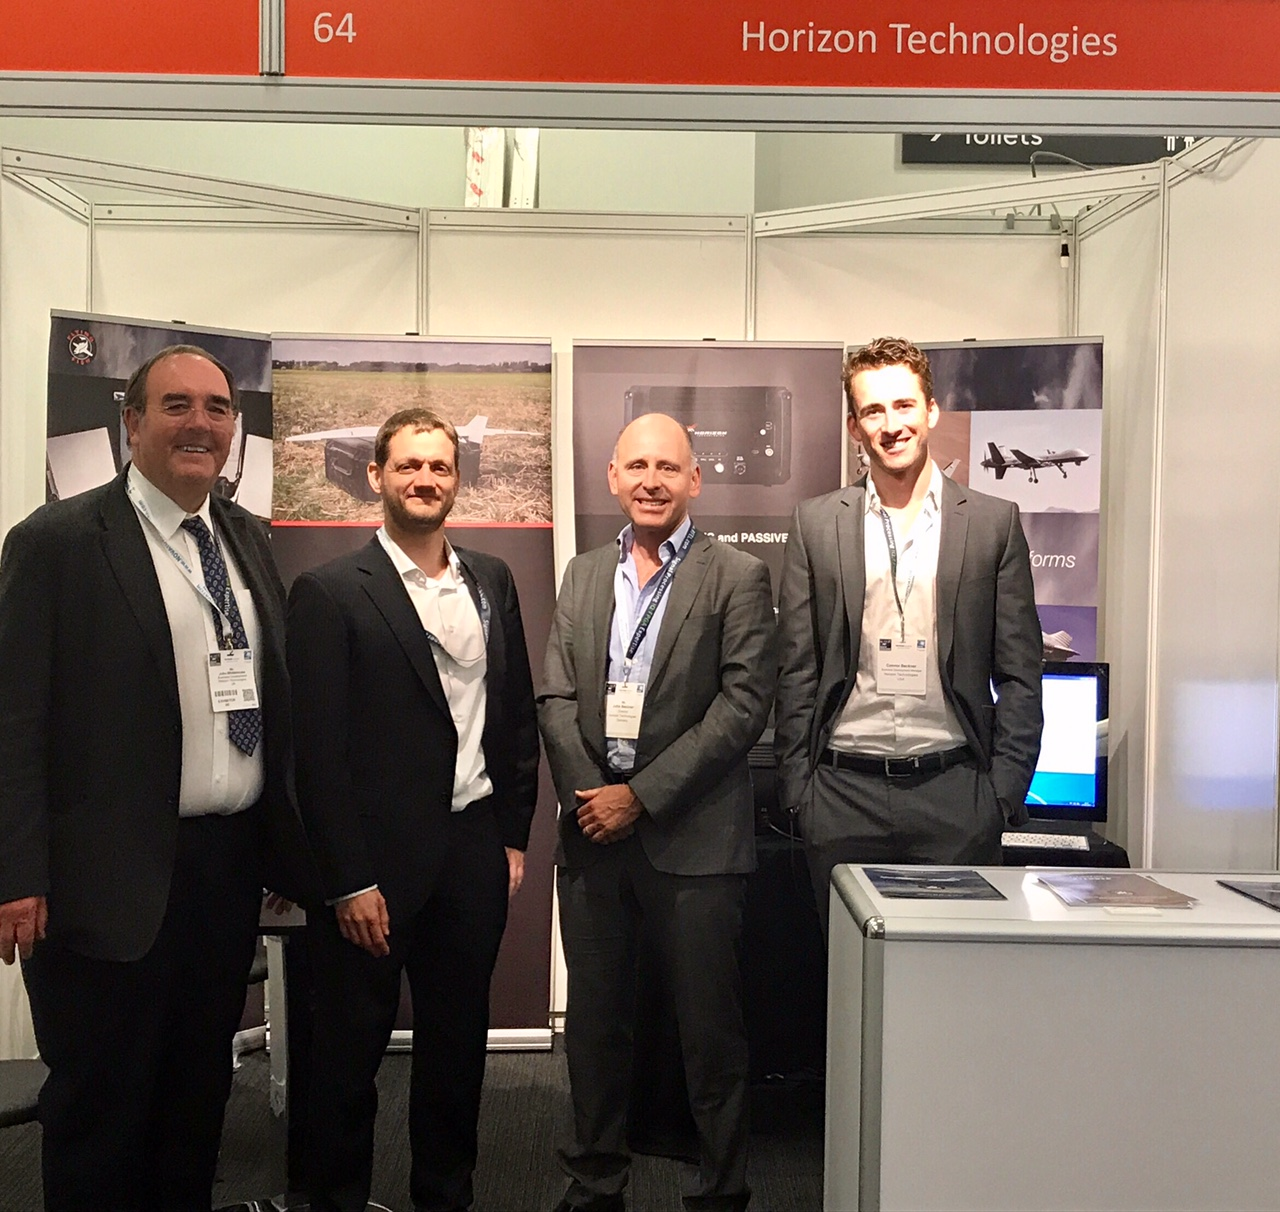 Horizon Technologies Exhibits at Electronic Warfare Europe in Olympia, London. Pictured from left to right: John Whitehouse, Claas Von Zombory, John Beckner, John Connor Beckner